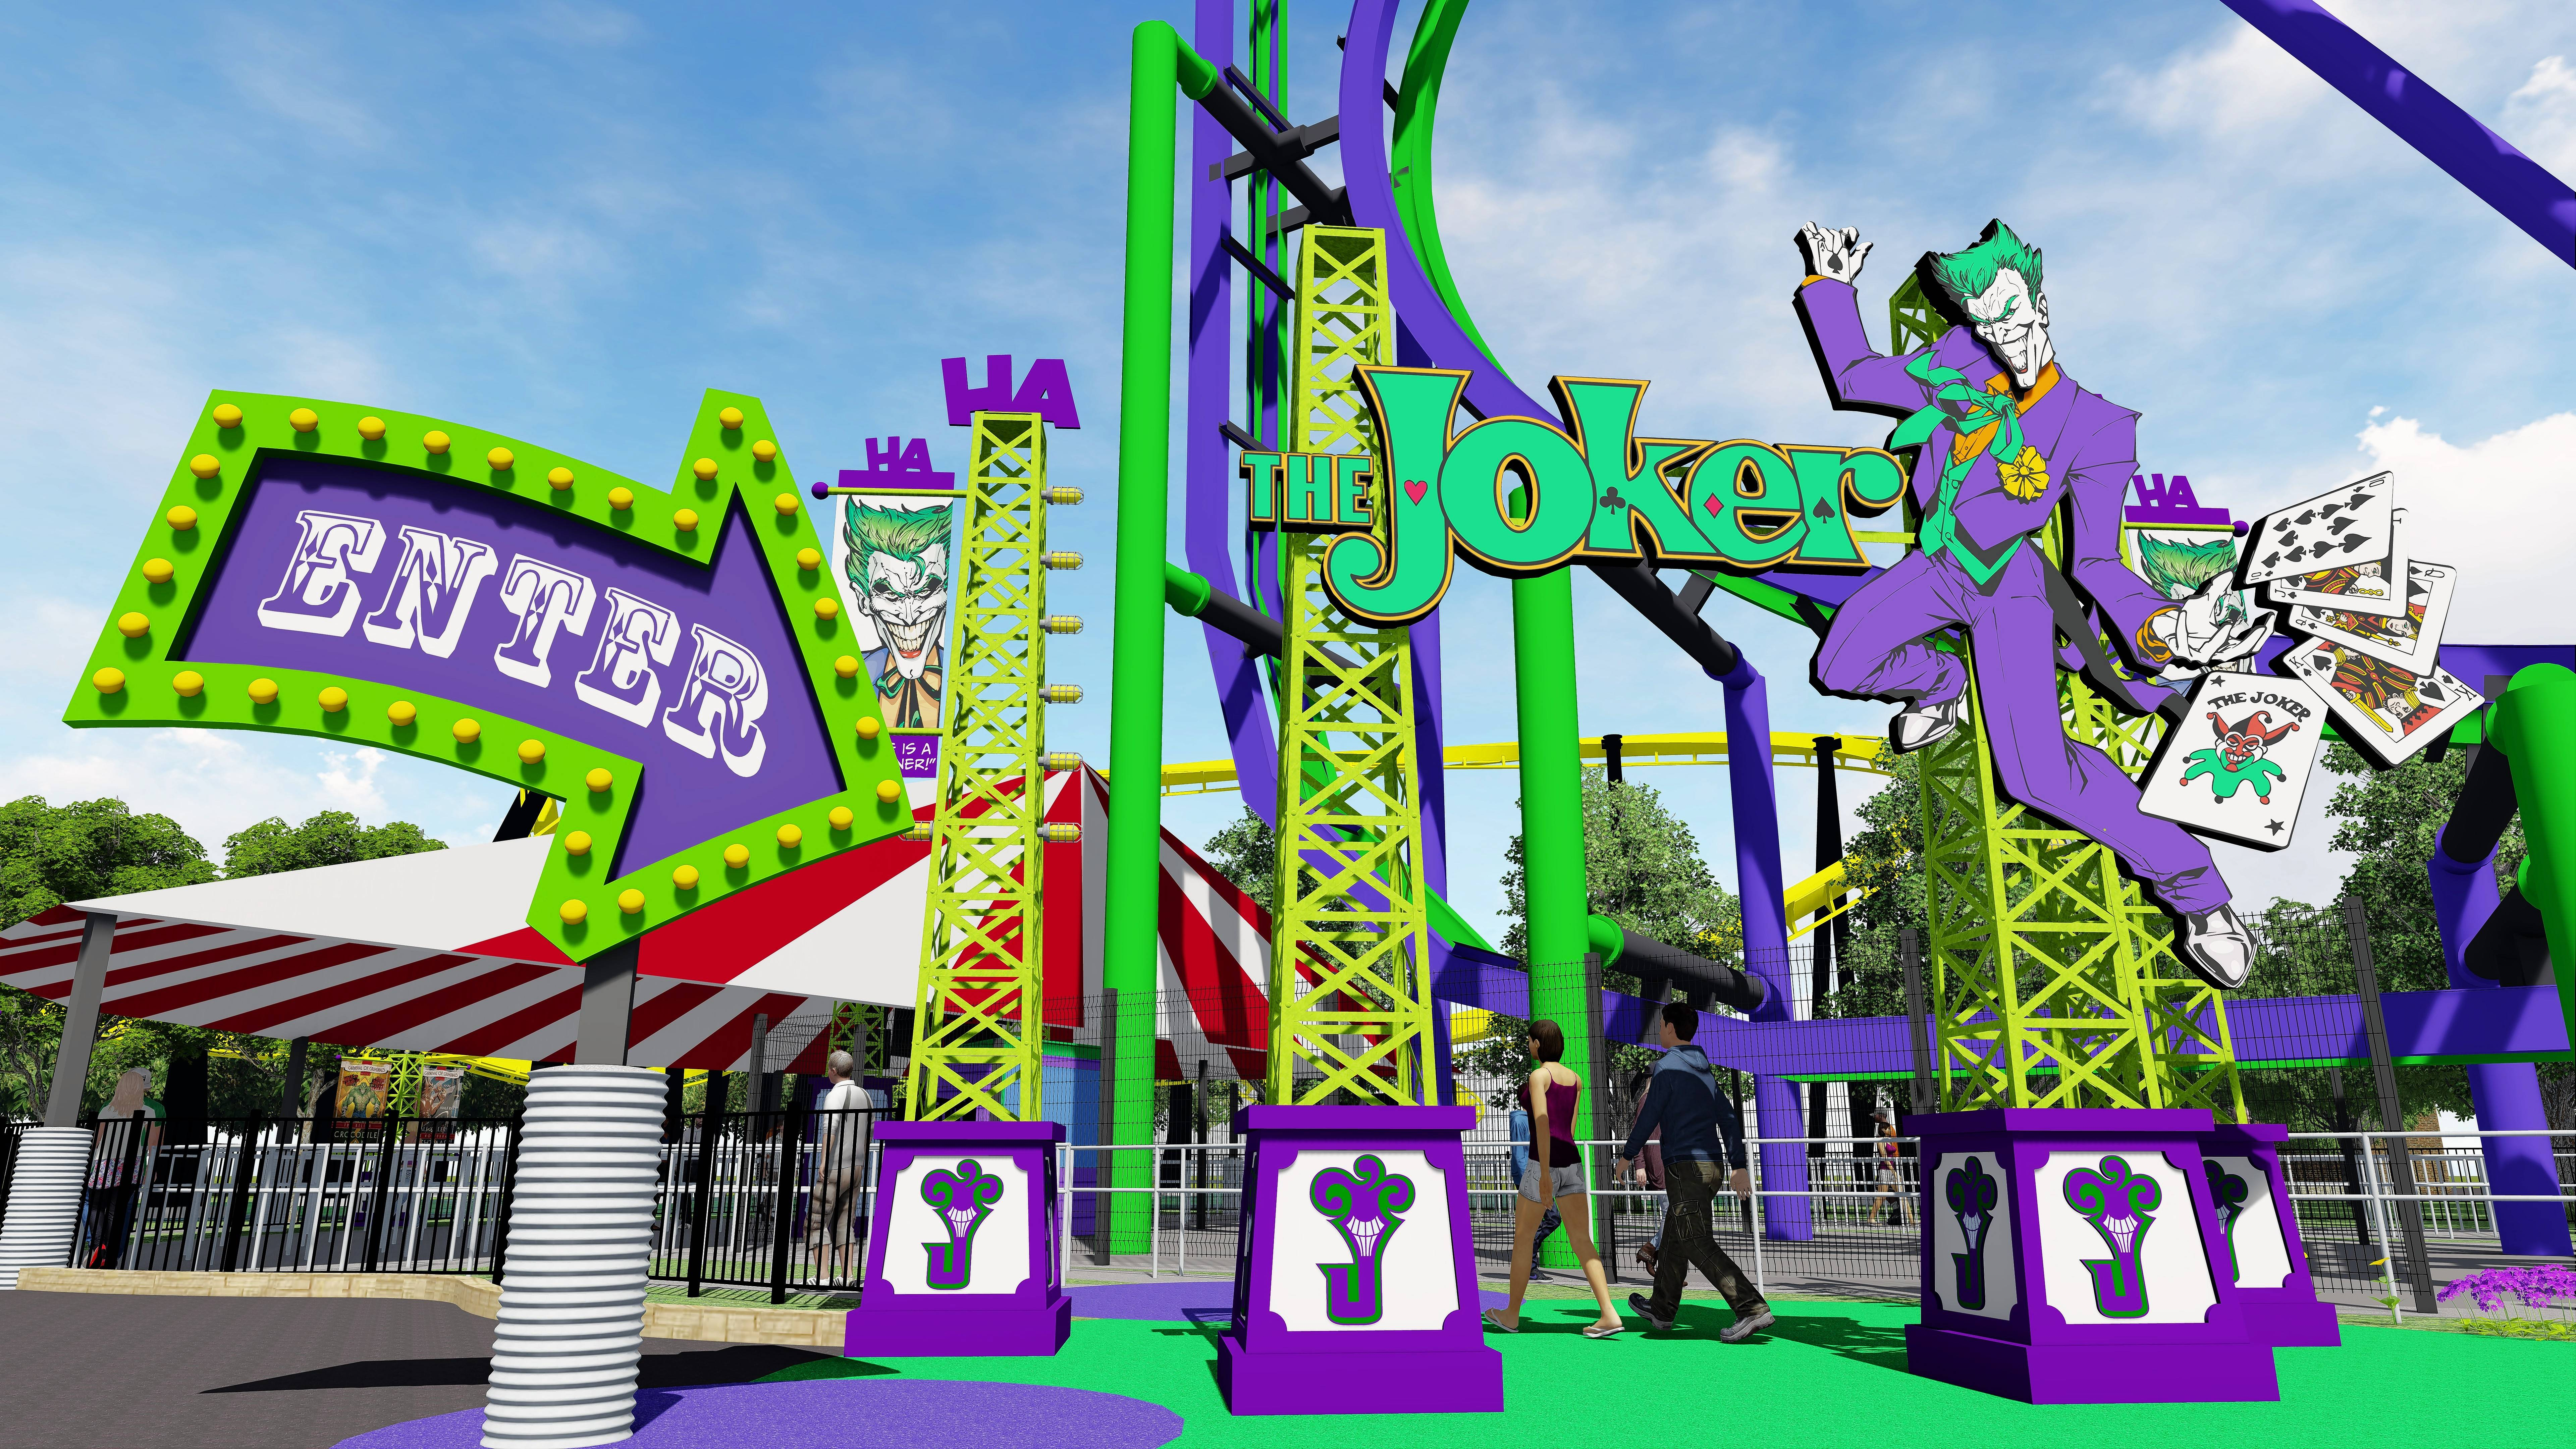 Six flags illinois coupons